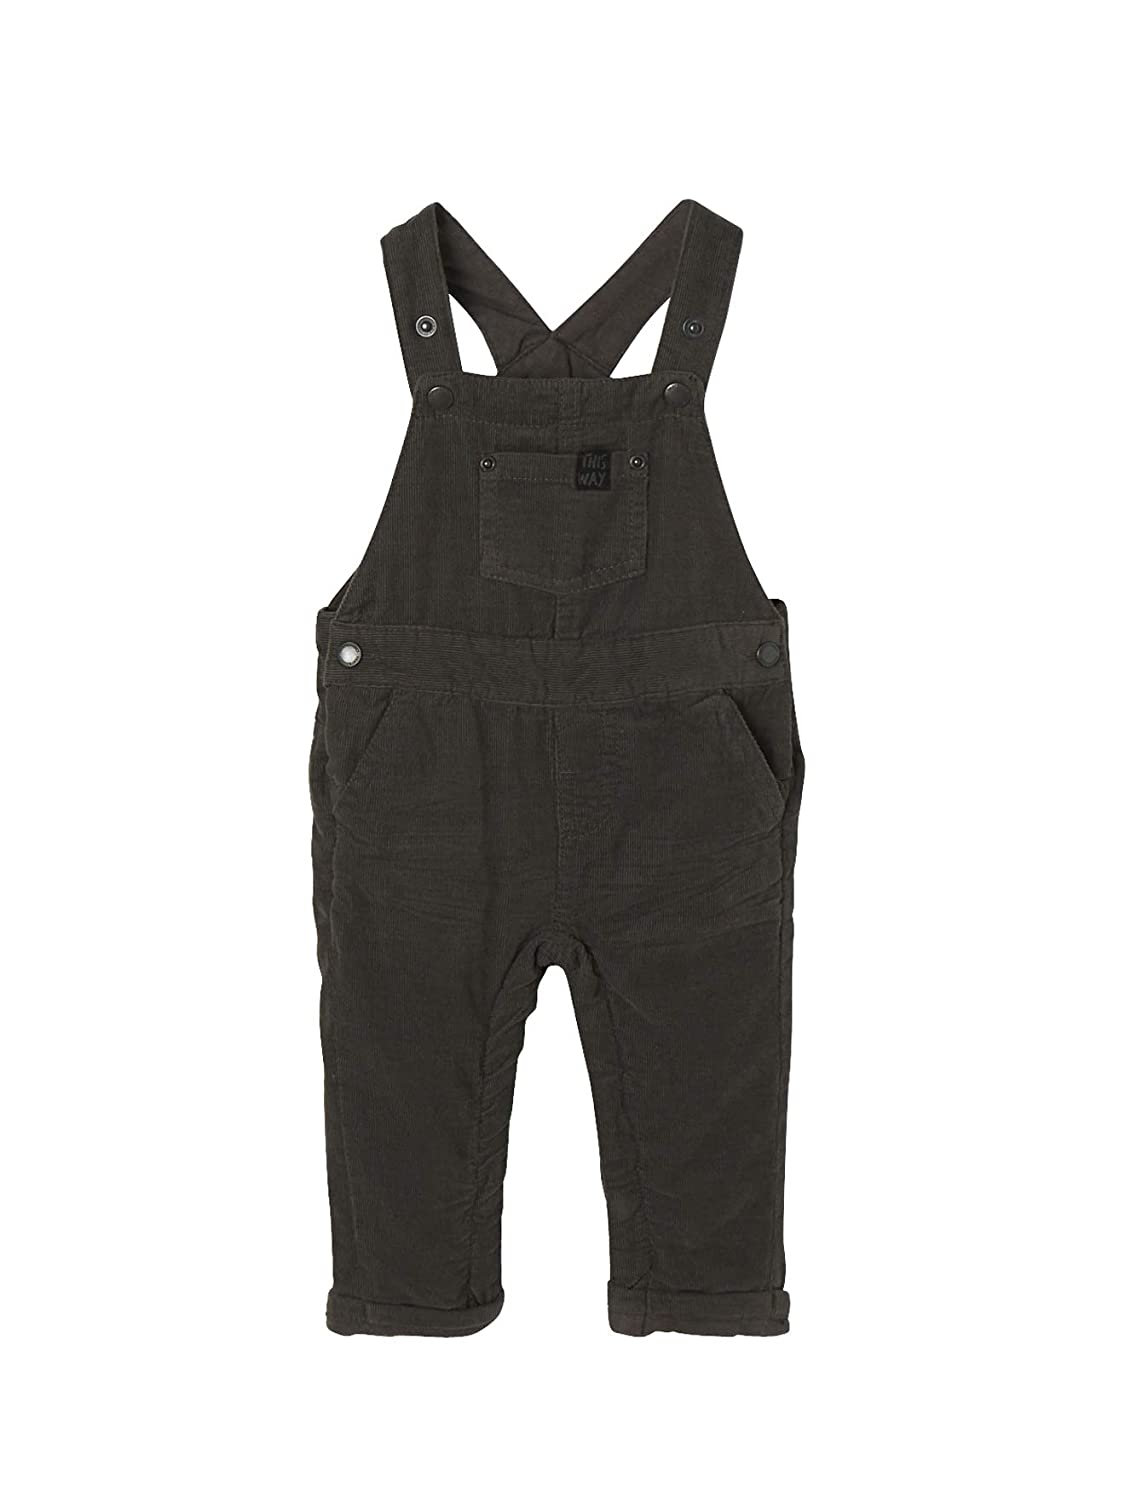 Vertbaudet Baby Boys' Dungarees Grey Anthracite Grey 18 Months(81 cm)